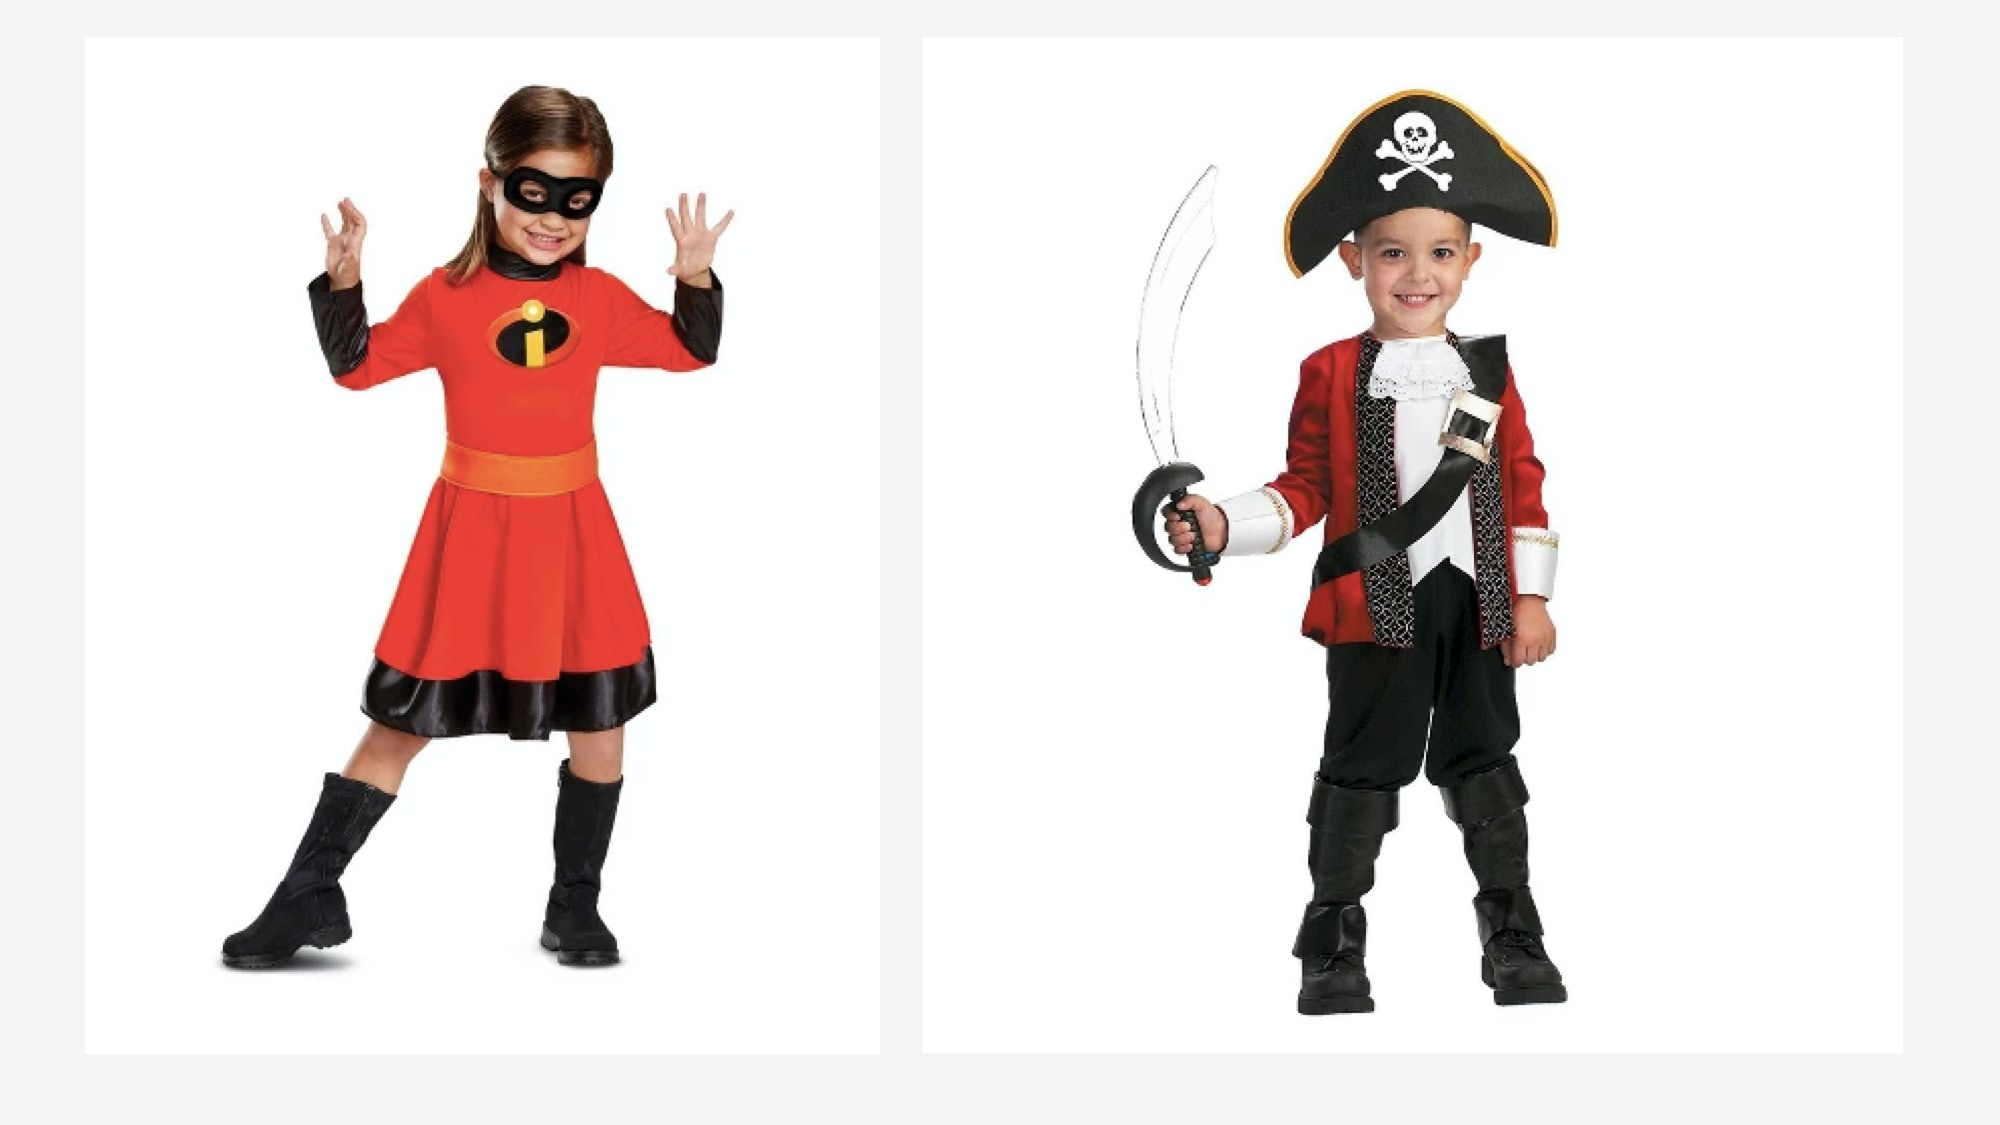 13 Halloween 2018 Costumes For Toddlers In Diapers, Because ...